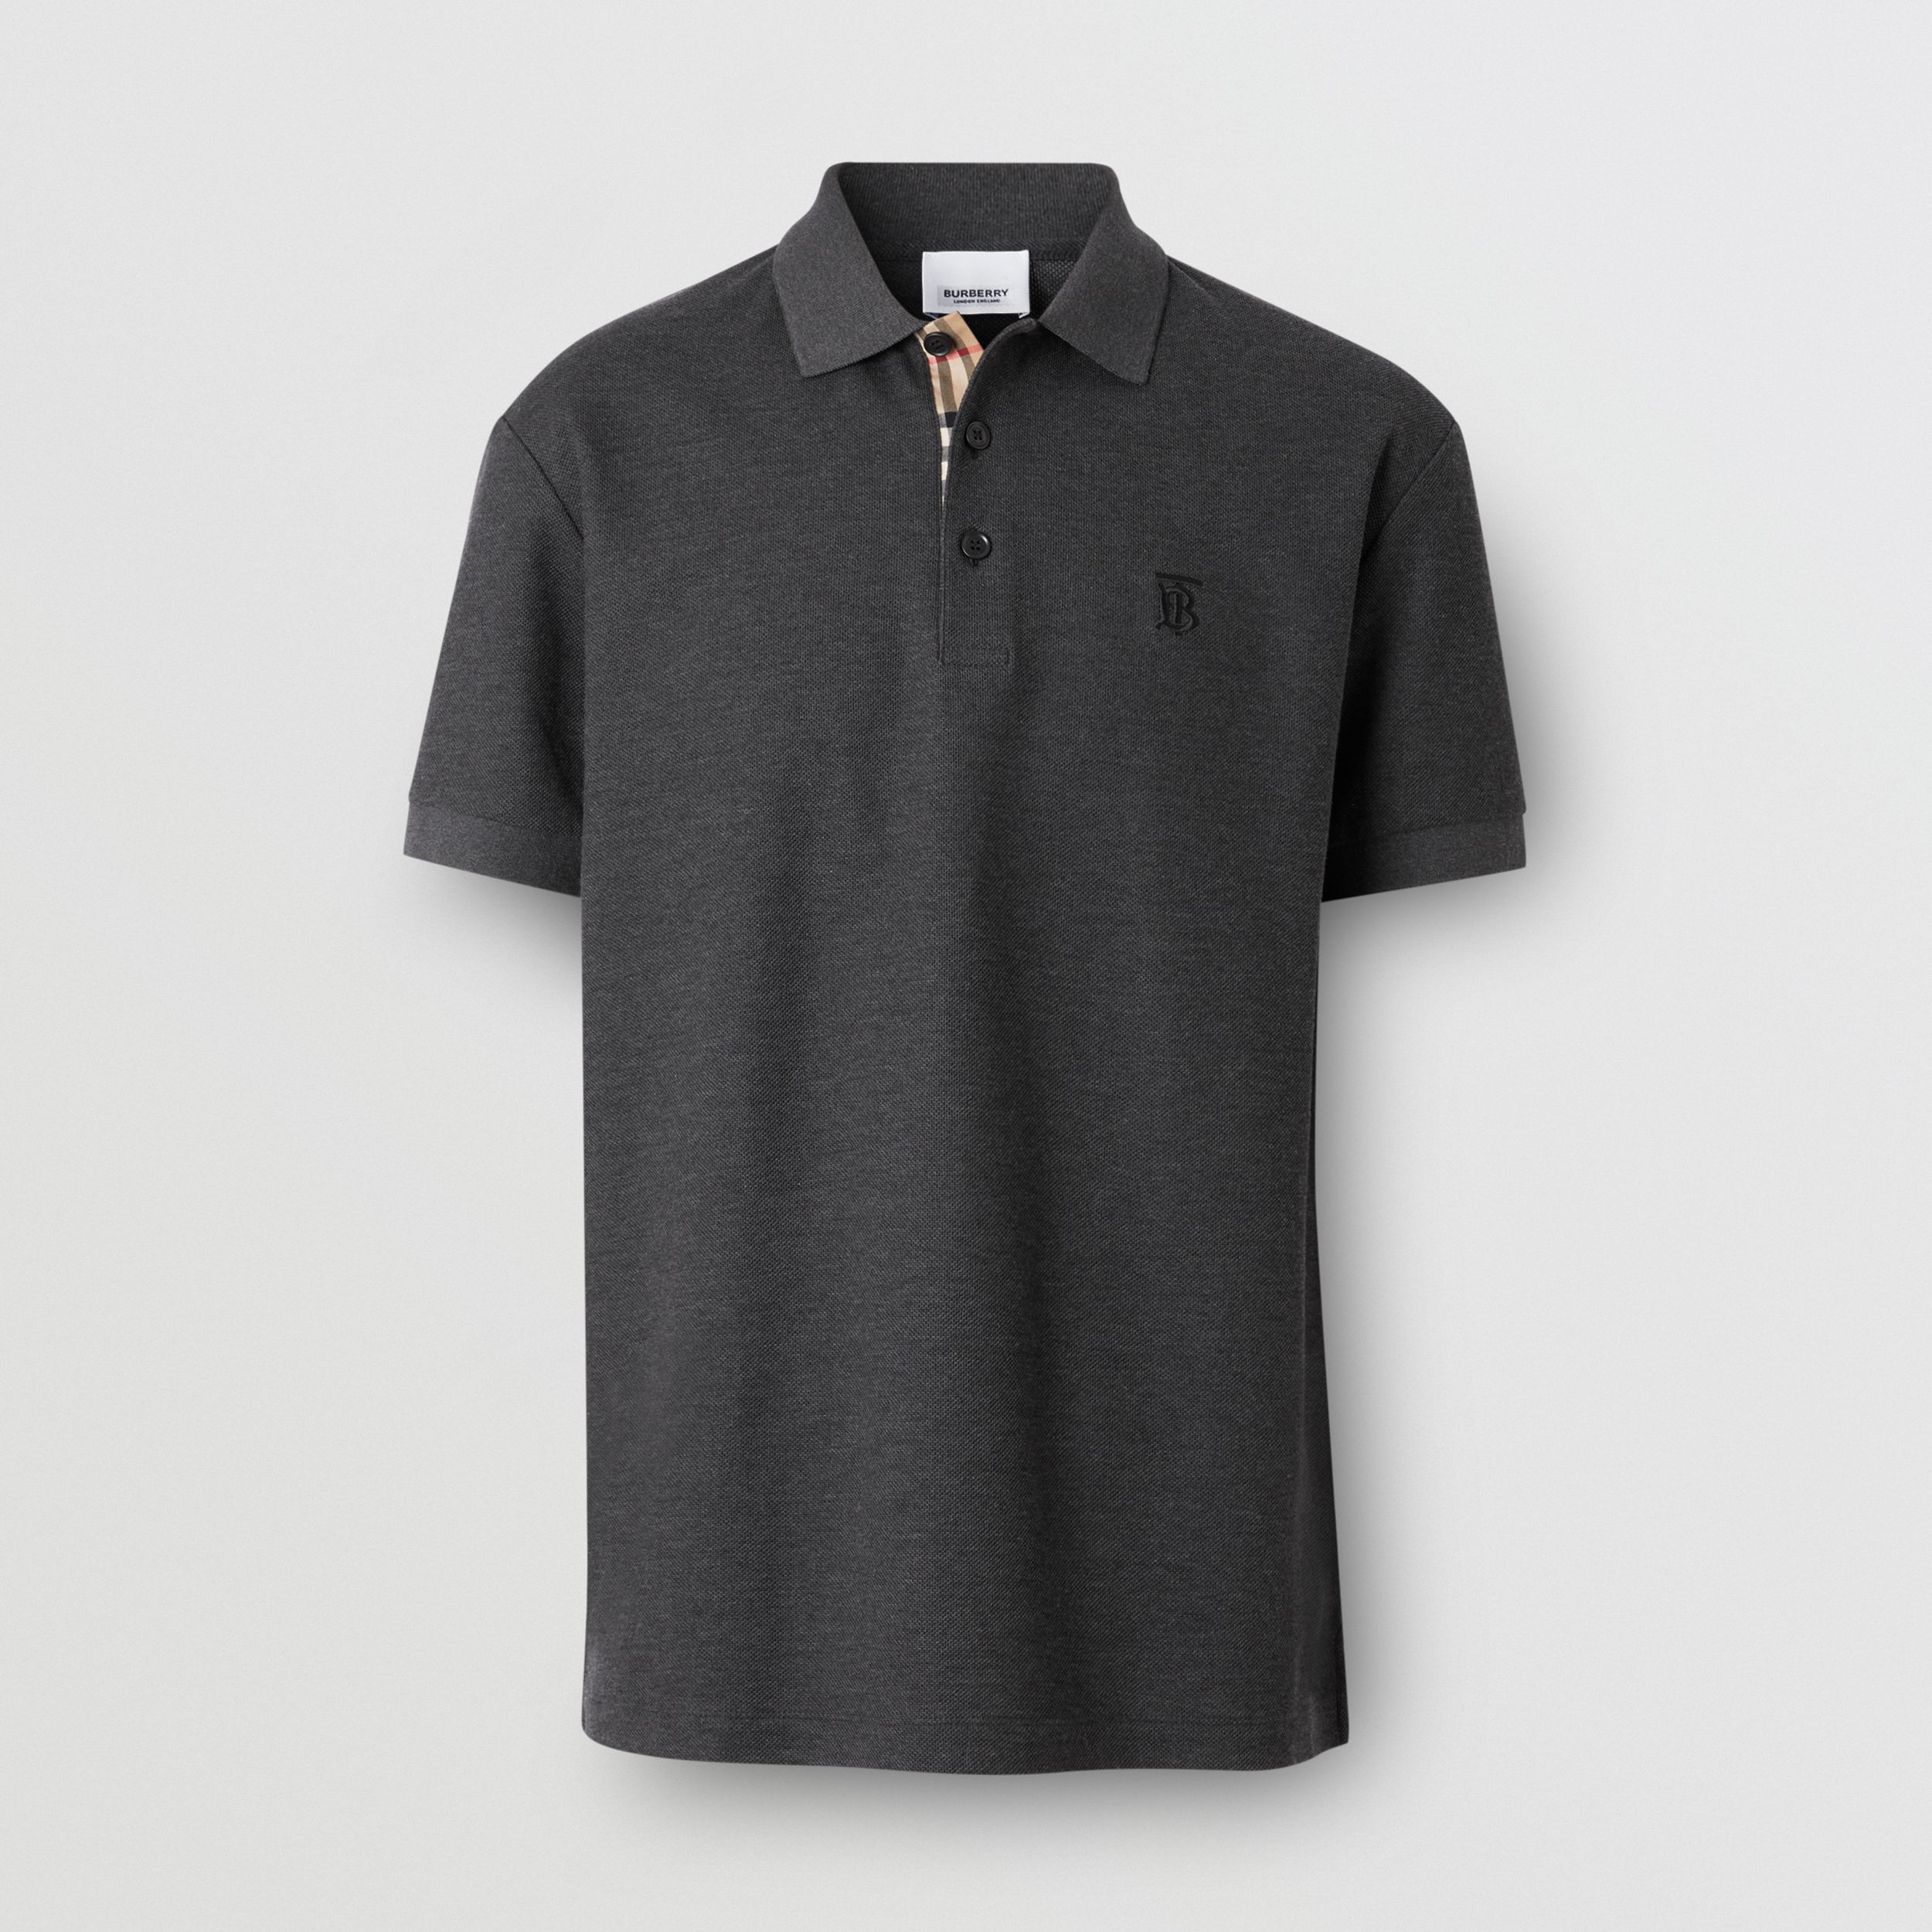 Monogram Motif Cotton Piqué Polo Shirt in Charcoal Melange - Men | Burberry Canada - 4